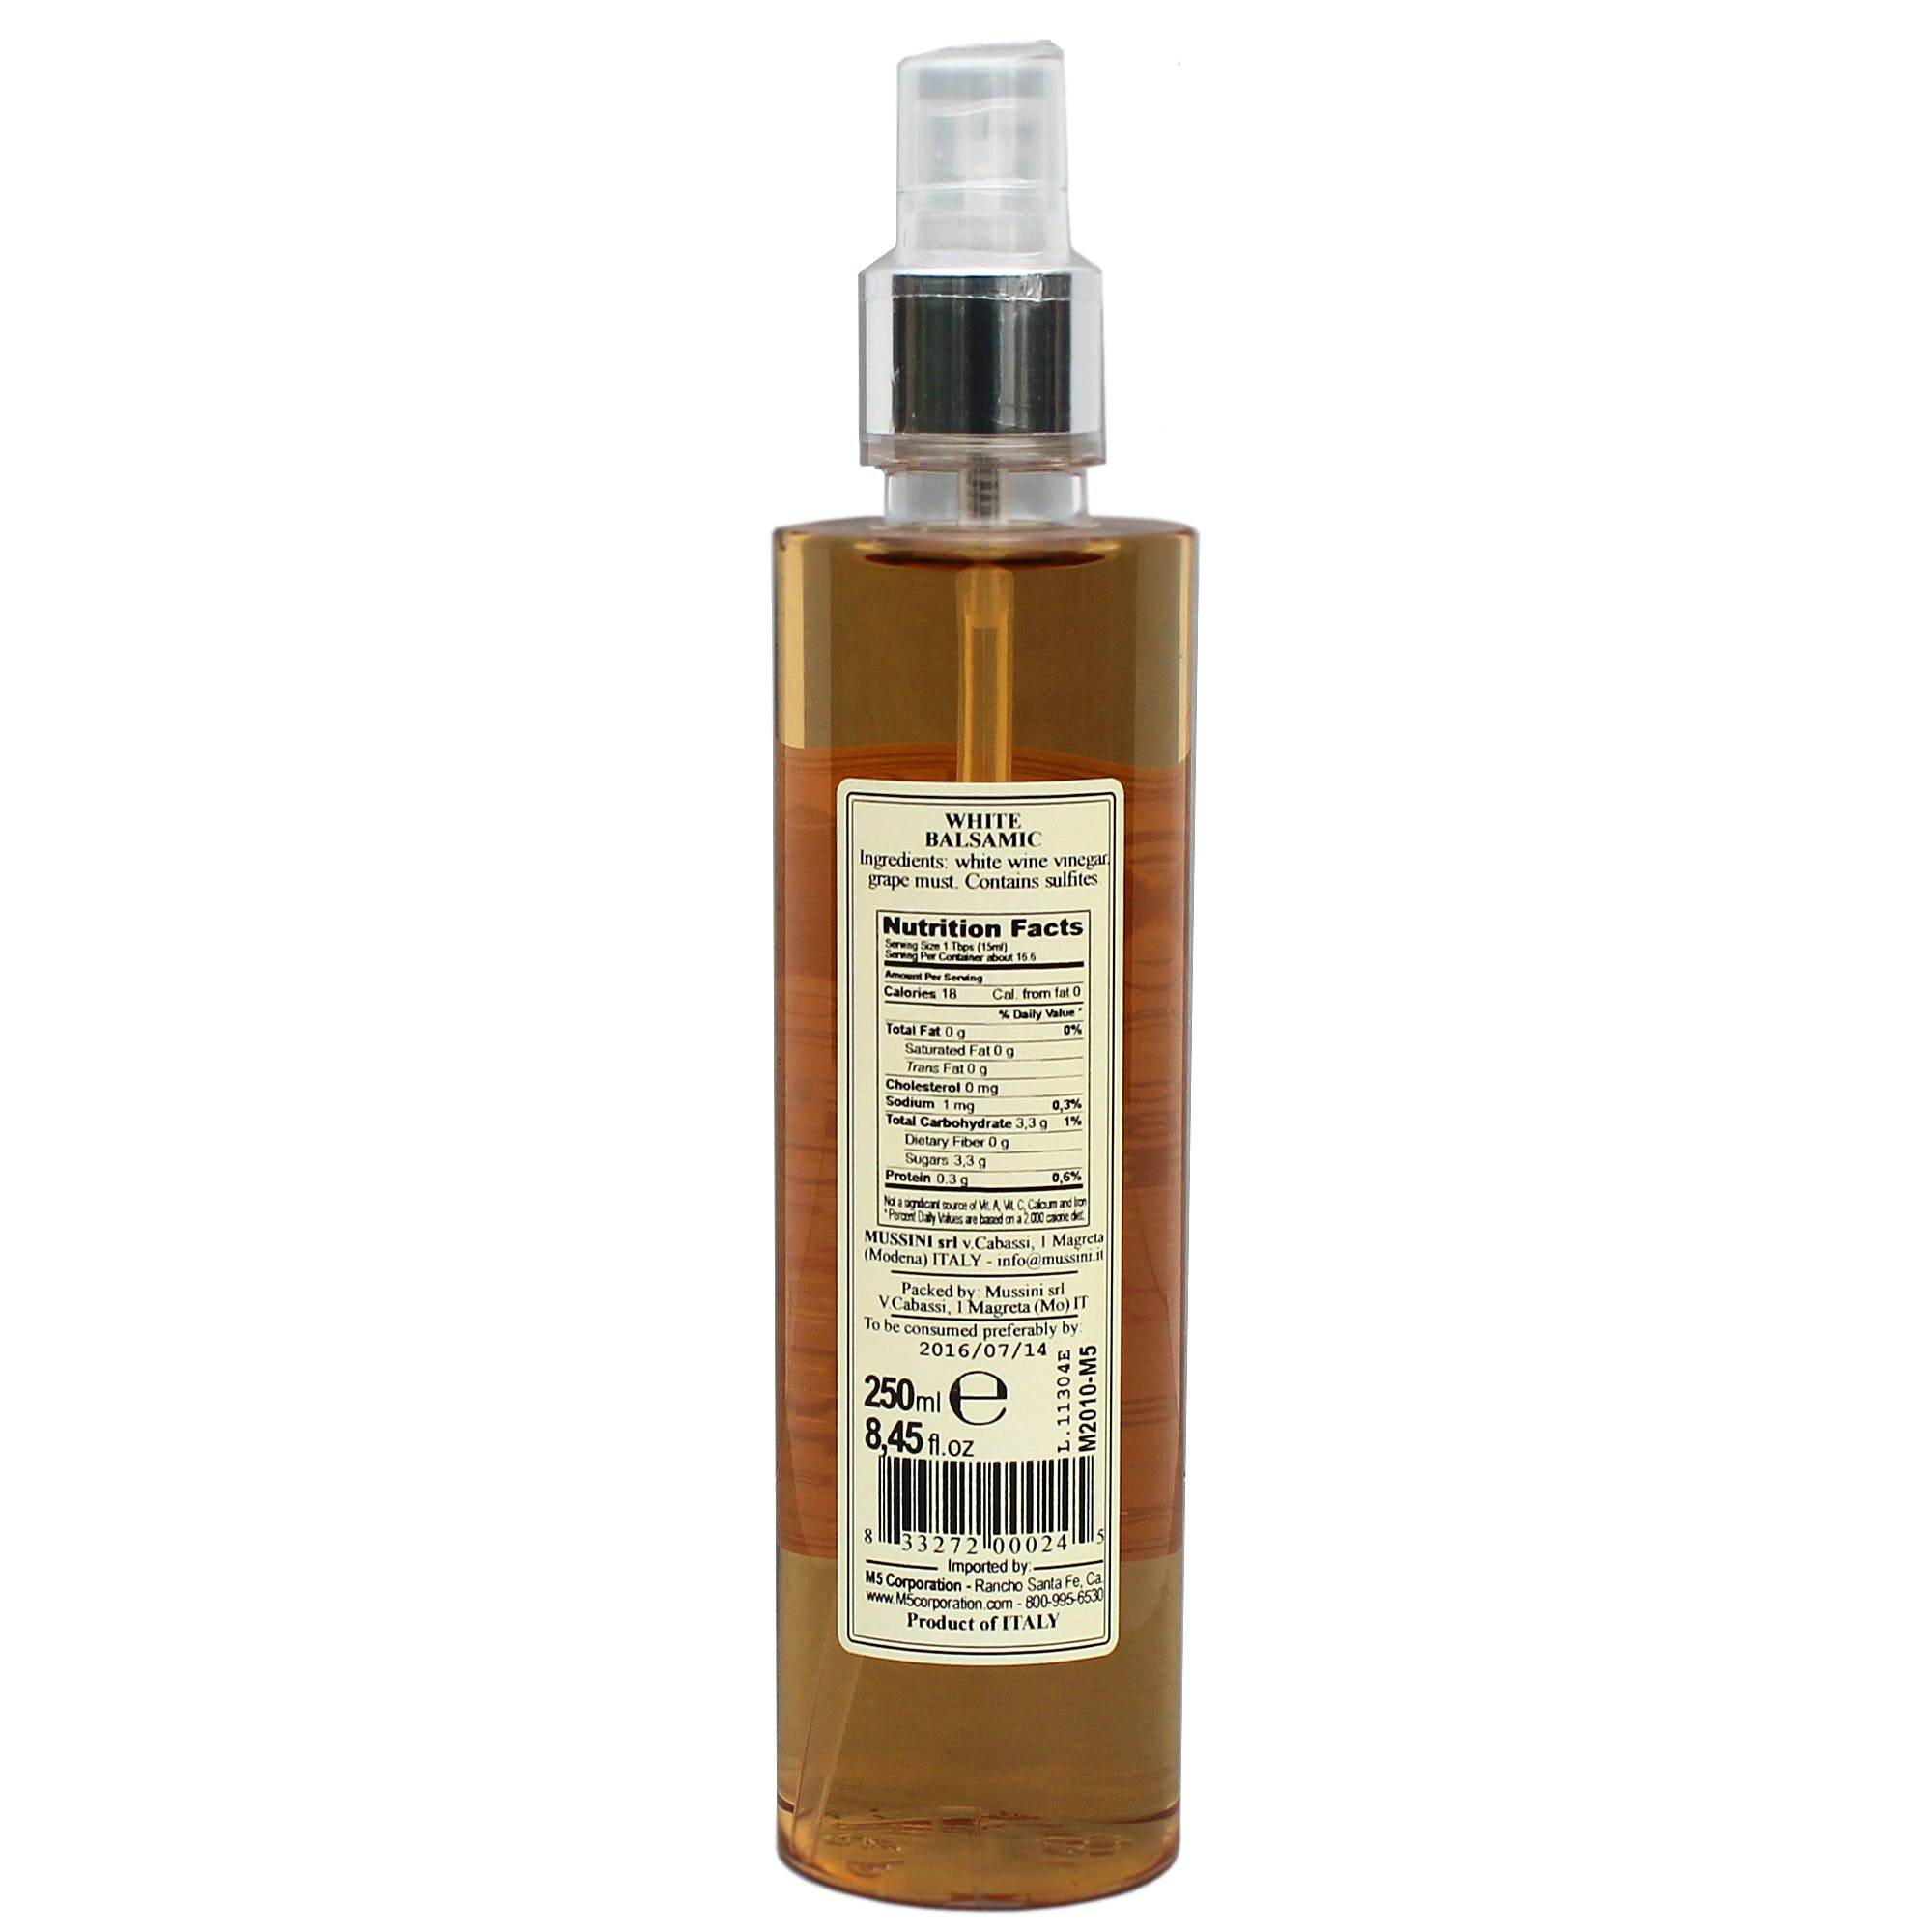 4 Year White Bittersweet Balsamic Vinegar Spray - sold by M5 Corporation